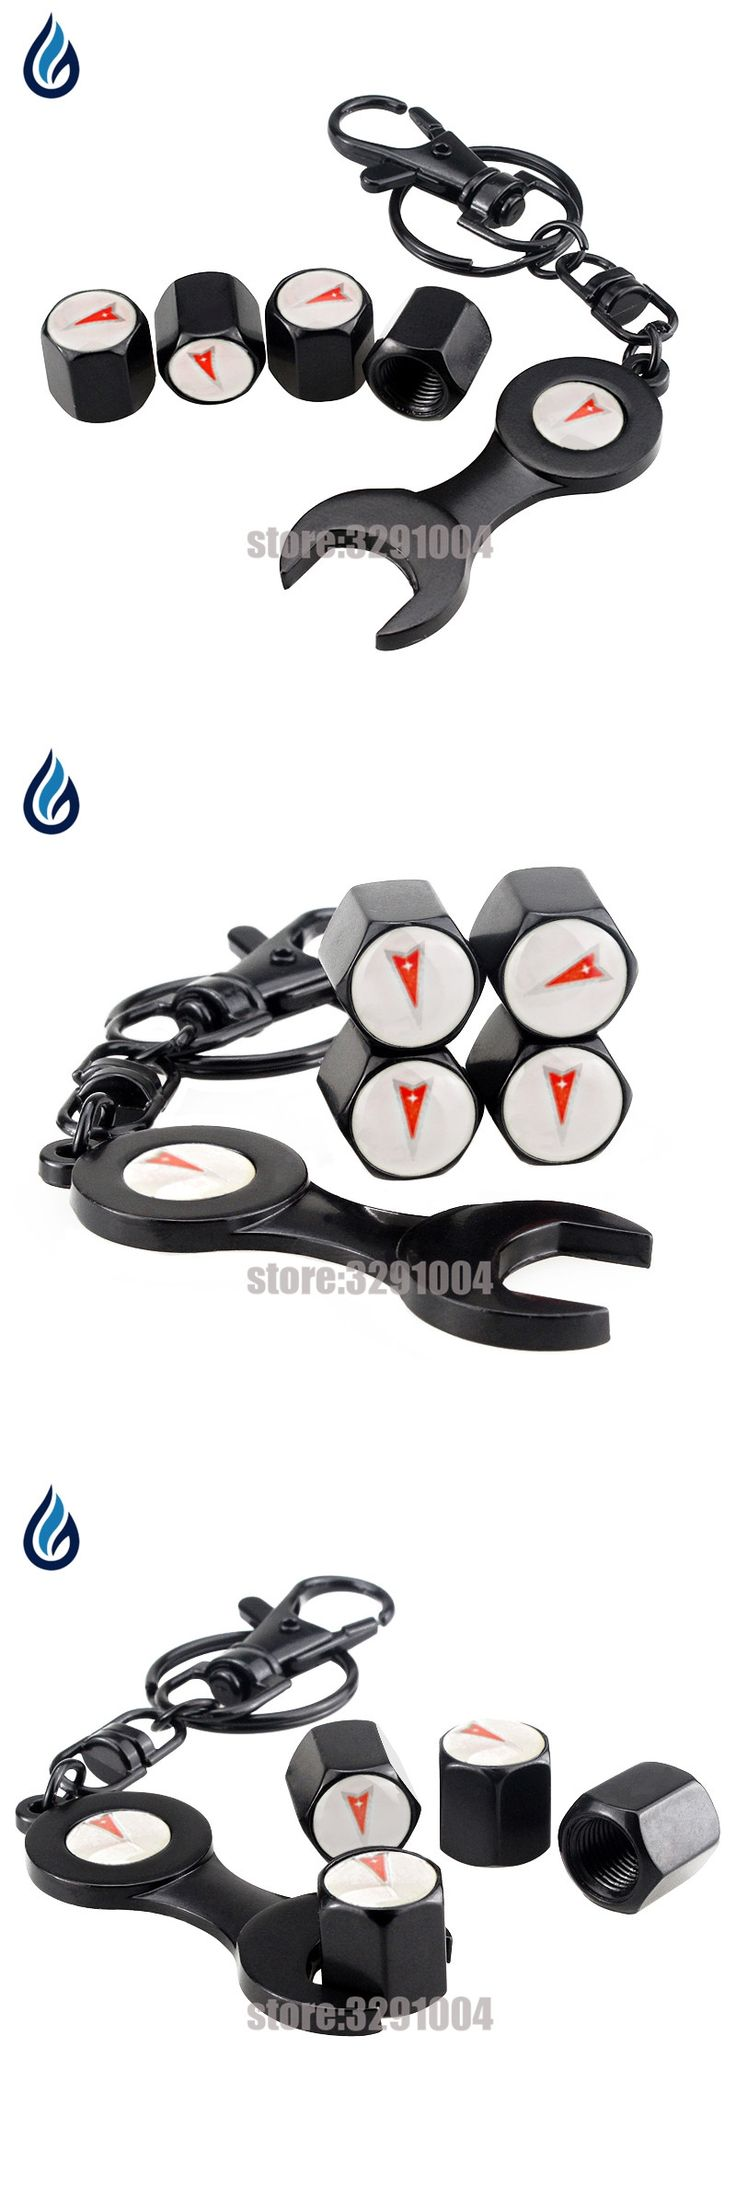 4pcs Car Wheel Tire Valve Caps Cover With Wrench KeyChain For Pontiac GTO Firebird Solstice Sunfire Grand Am Prix Vibe Solstic